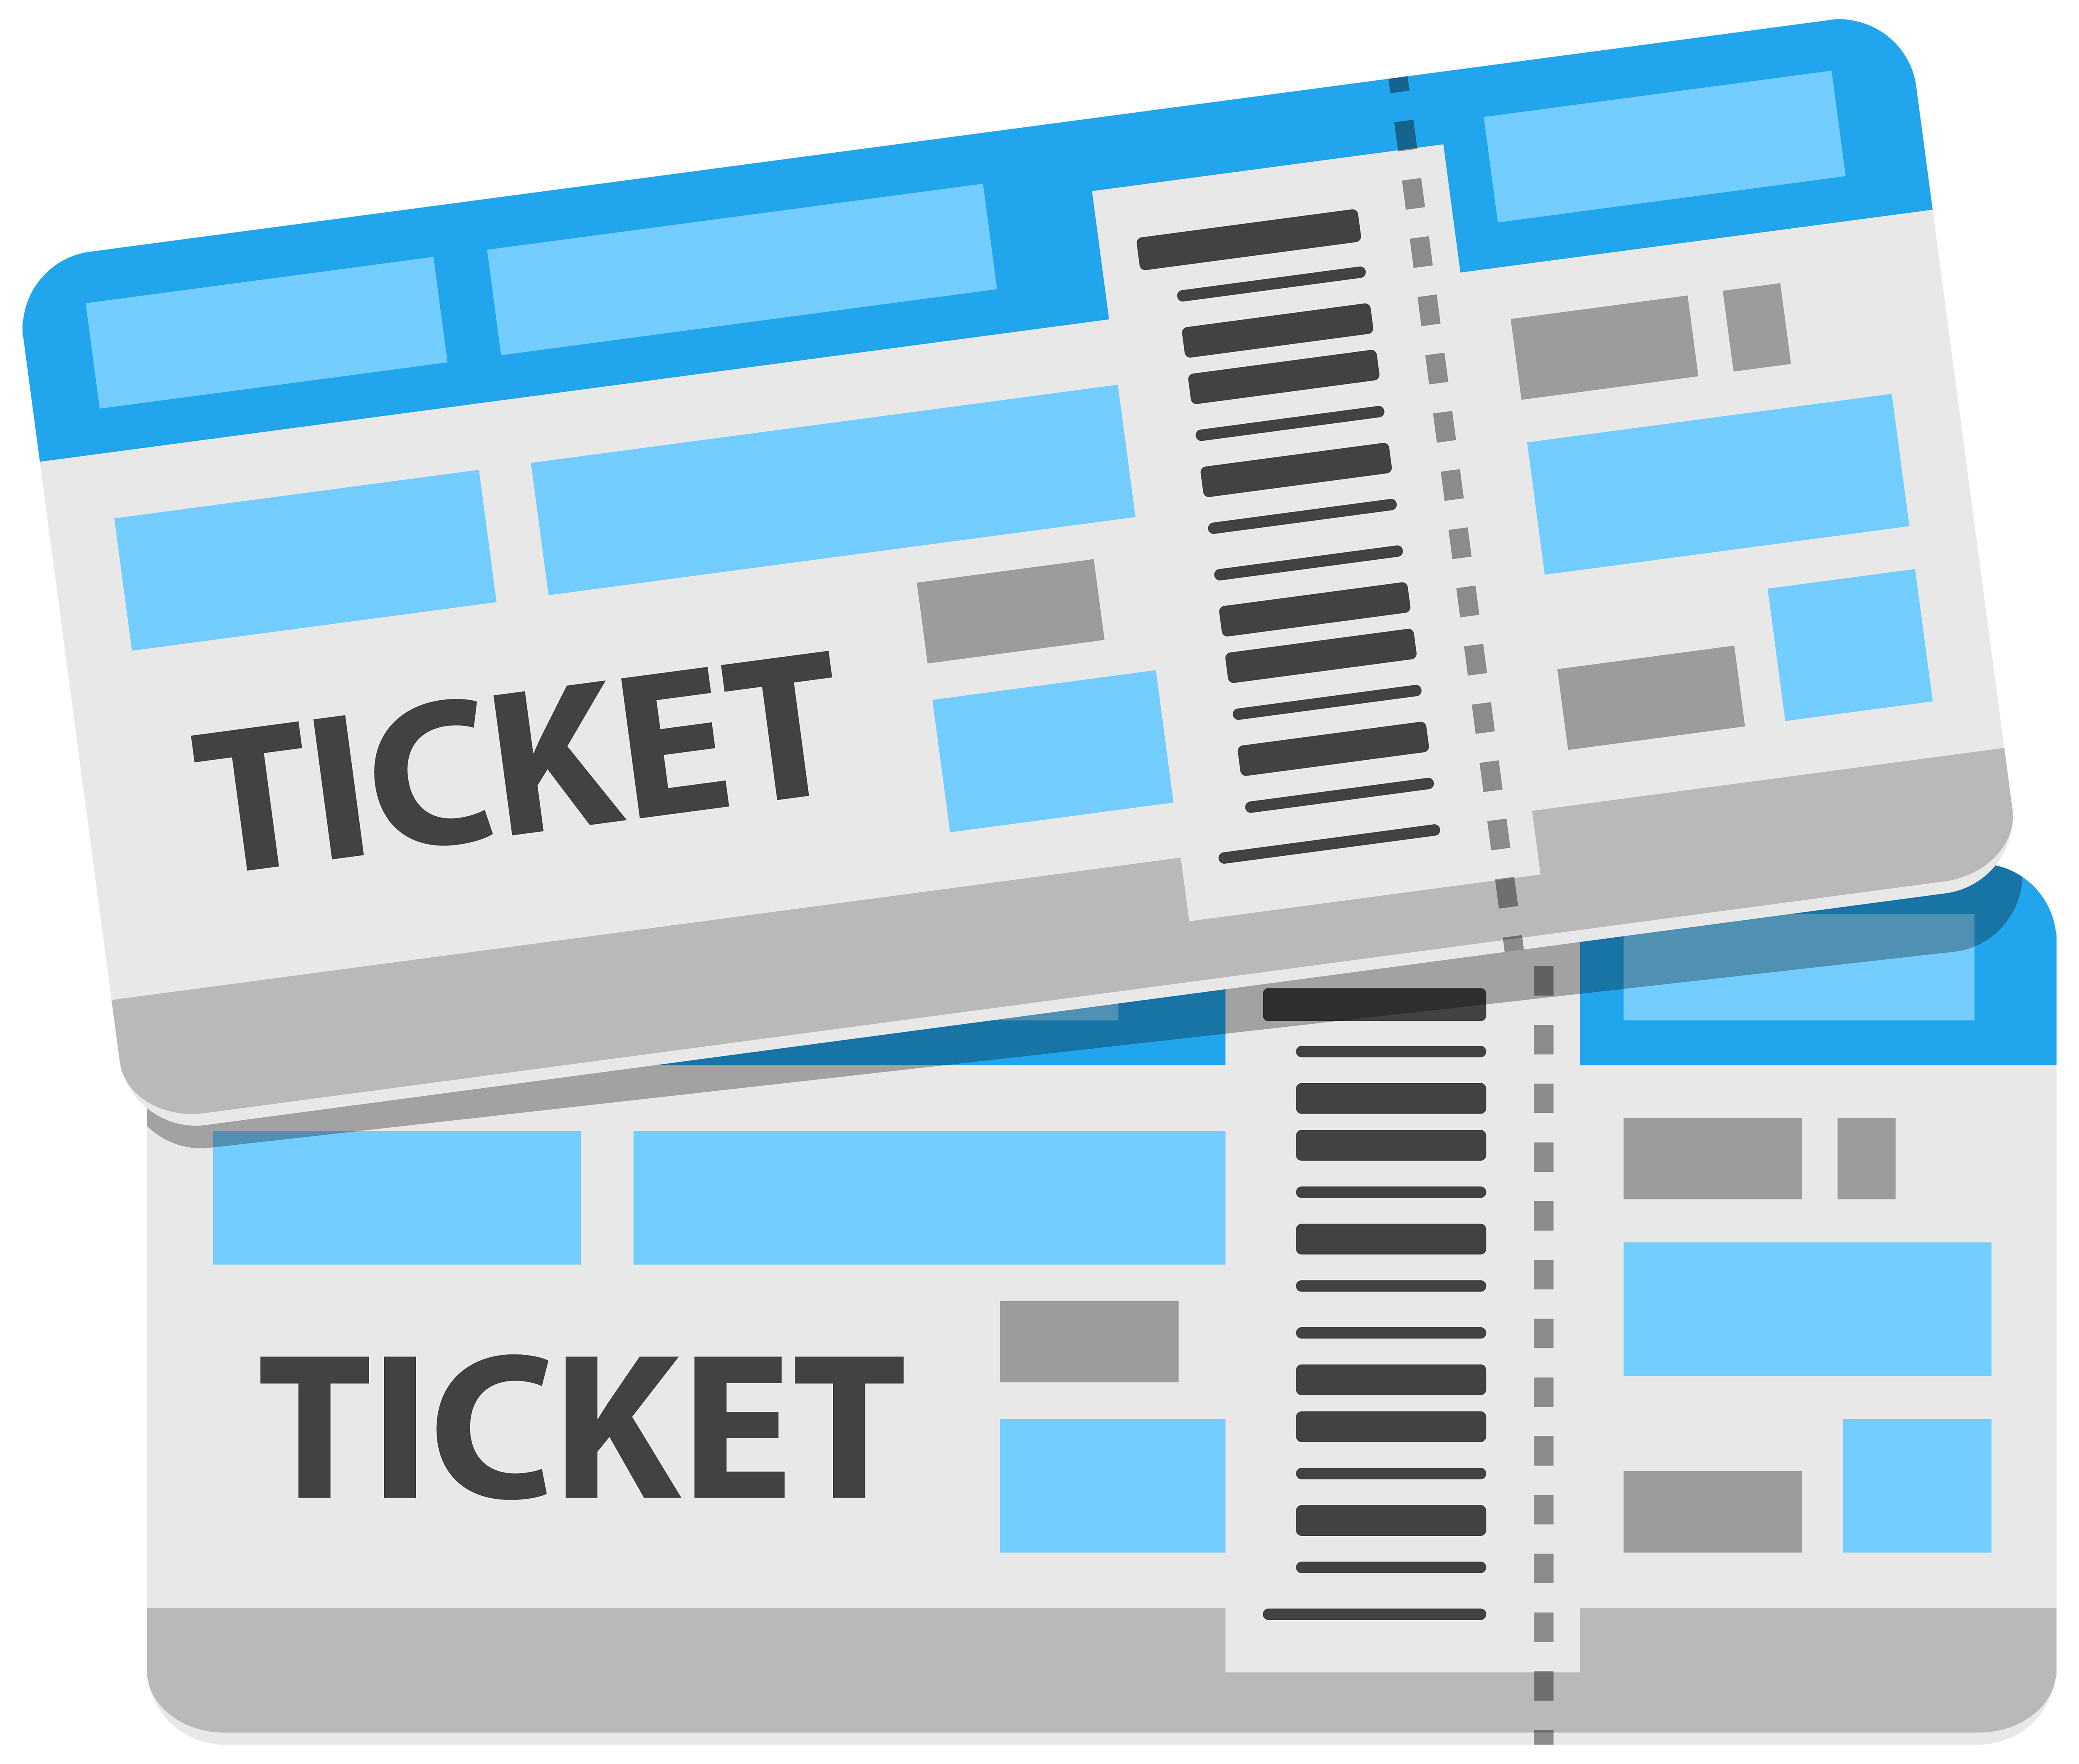 Clipart Of Ticket.